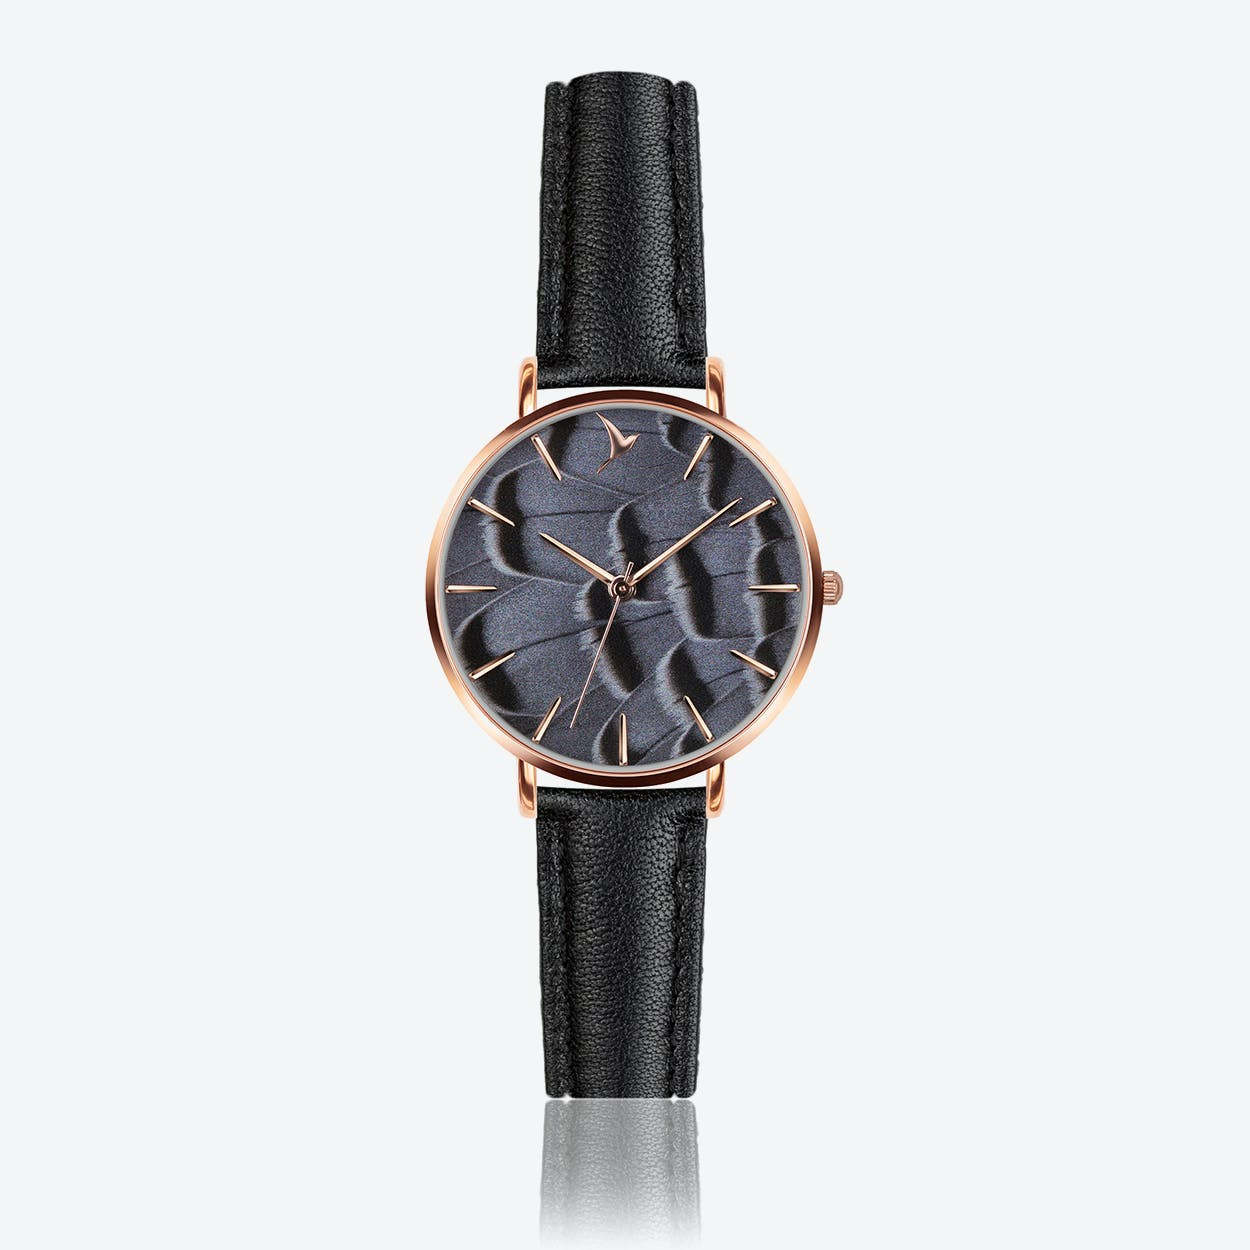 Feather Print Watch in Black Leather ⌀33